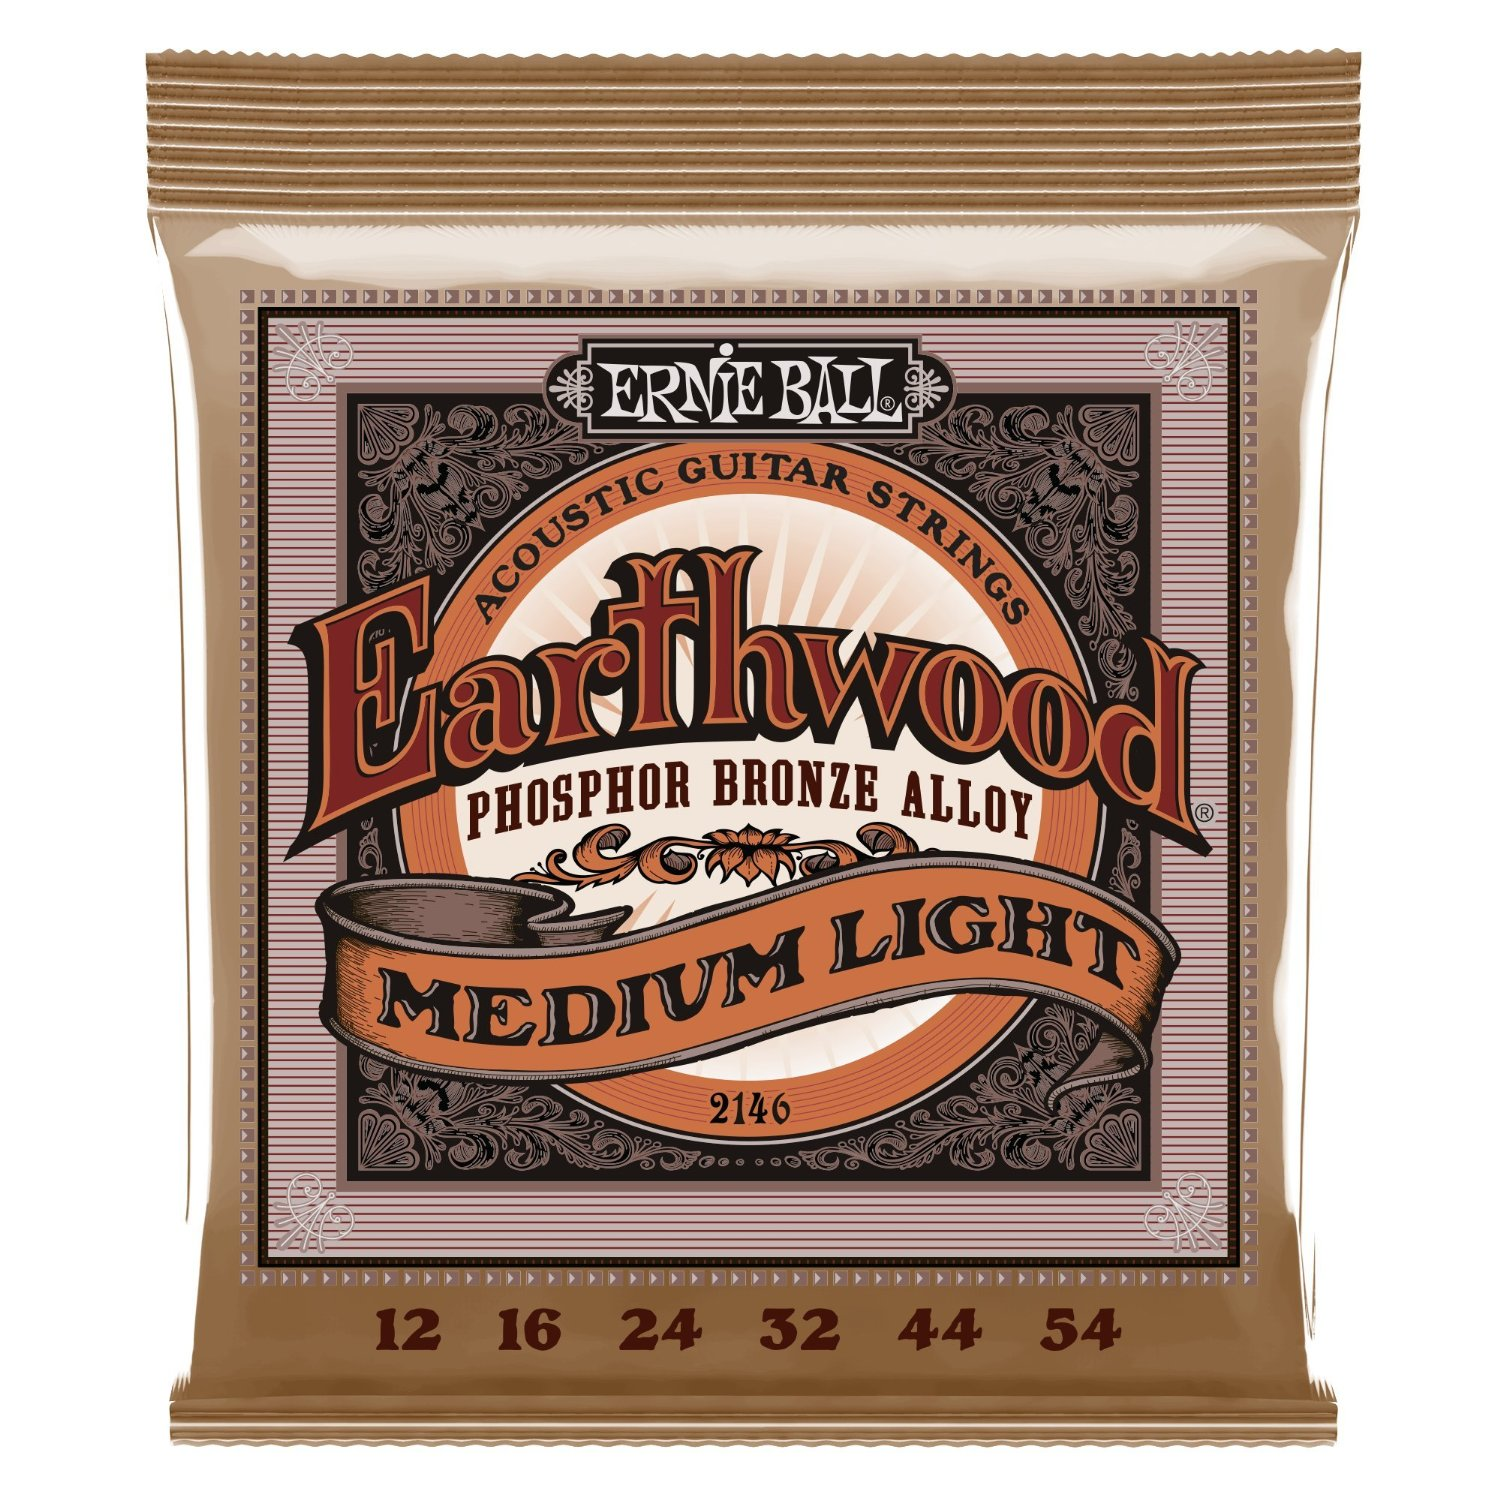 Ernie Ball 2146 Earthwood Medium Light Acoustic Phosphor Bronze String Set